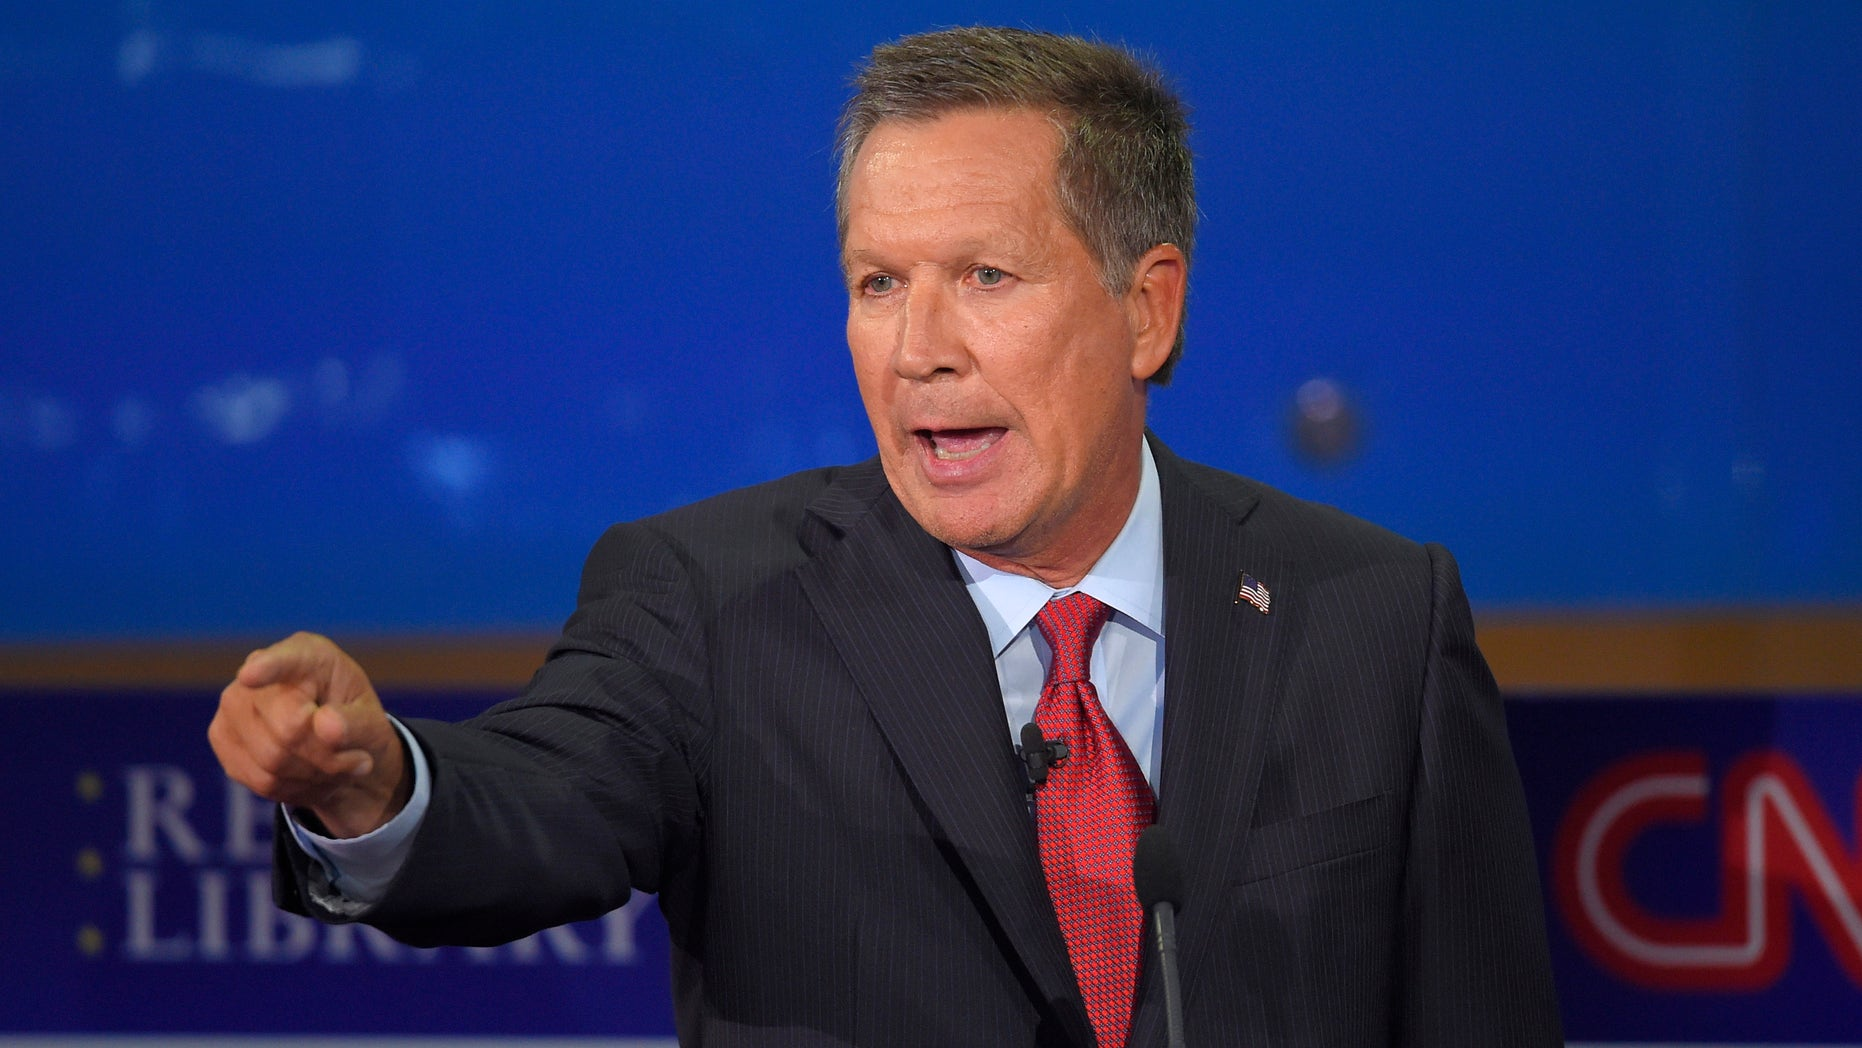 Ohio Gov. John Kasich could challenge President Trump as an Independent in 2020. Sept. 16, 2015, in Simi Valley, Calif. (AP Photo/Mark J. Terrill)